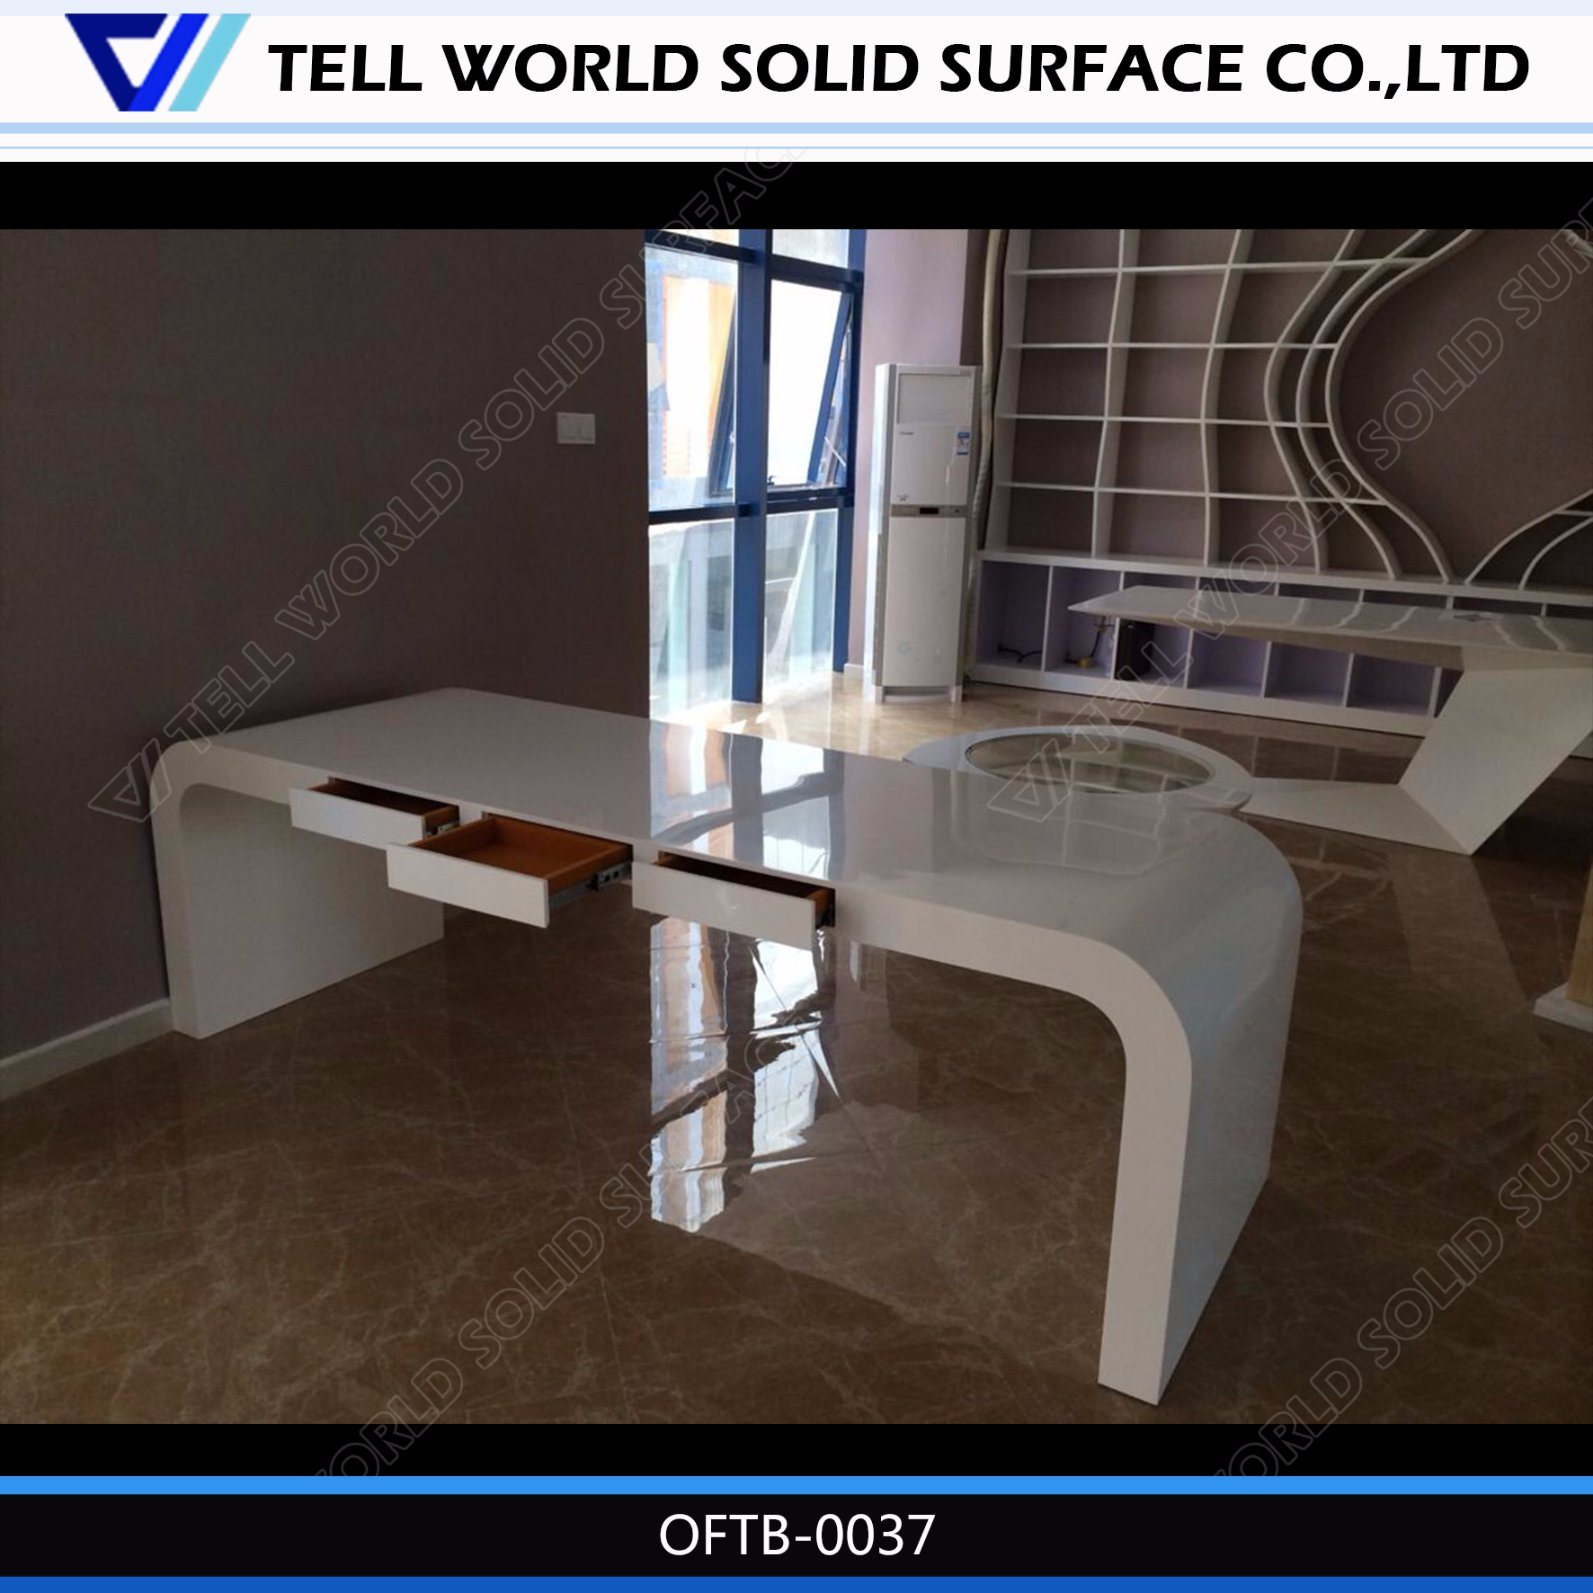 furniture set mercial design stylish desk inspirational office commercial fice cupboard